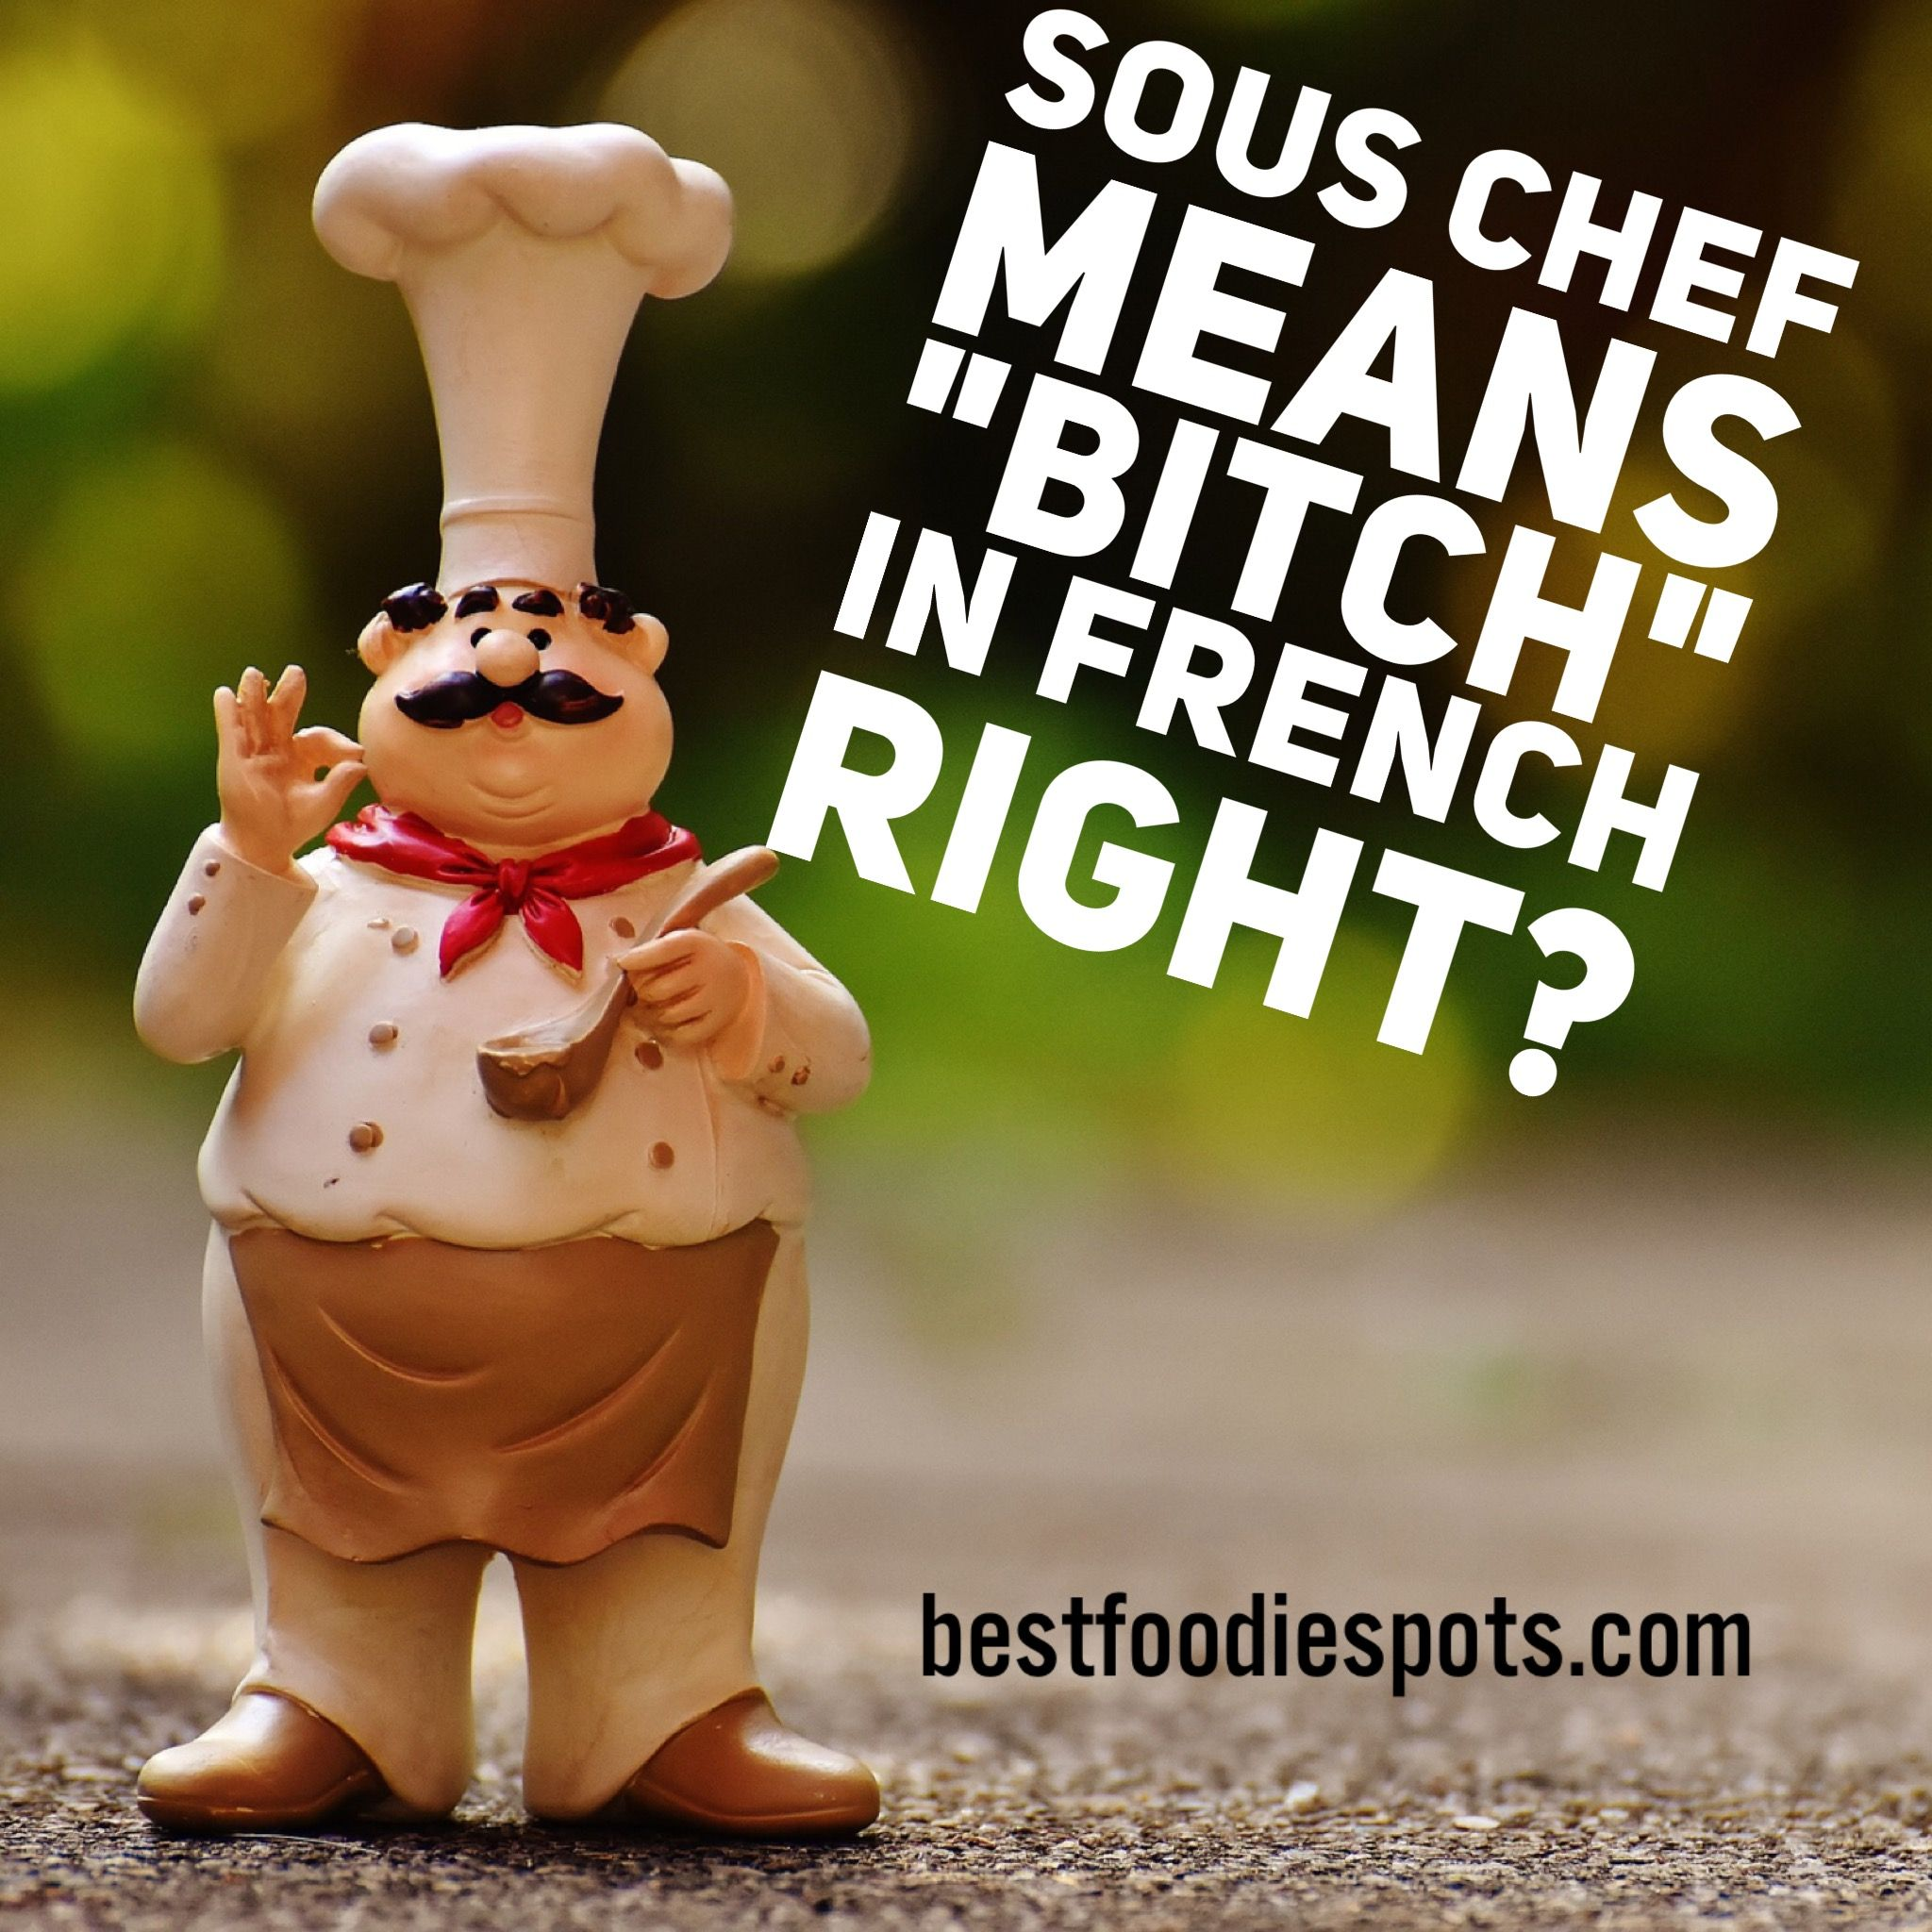 Pin By Bestfoodiespots On Best Foodie Memes Chef Meaning Sous Chef Chef